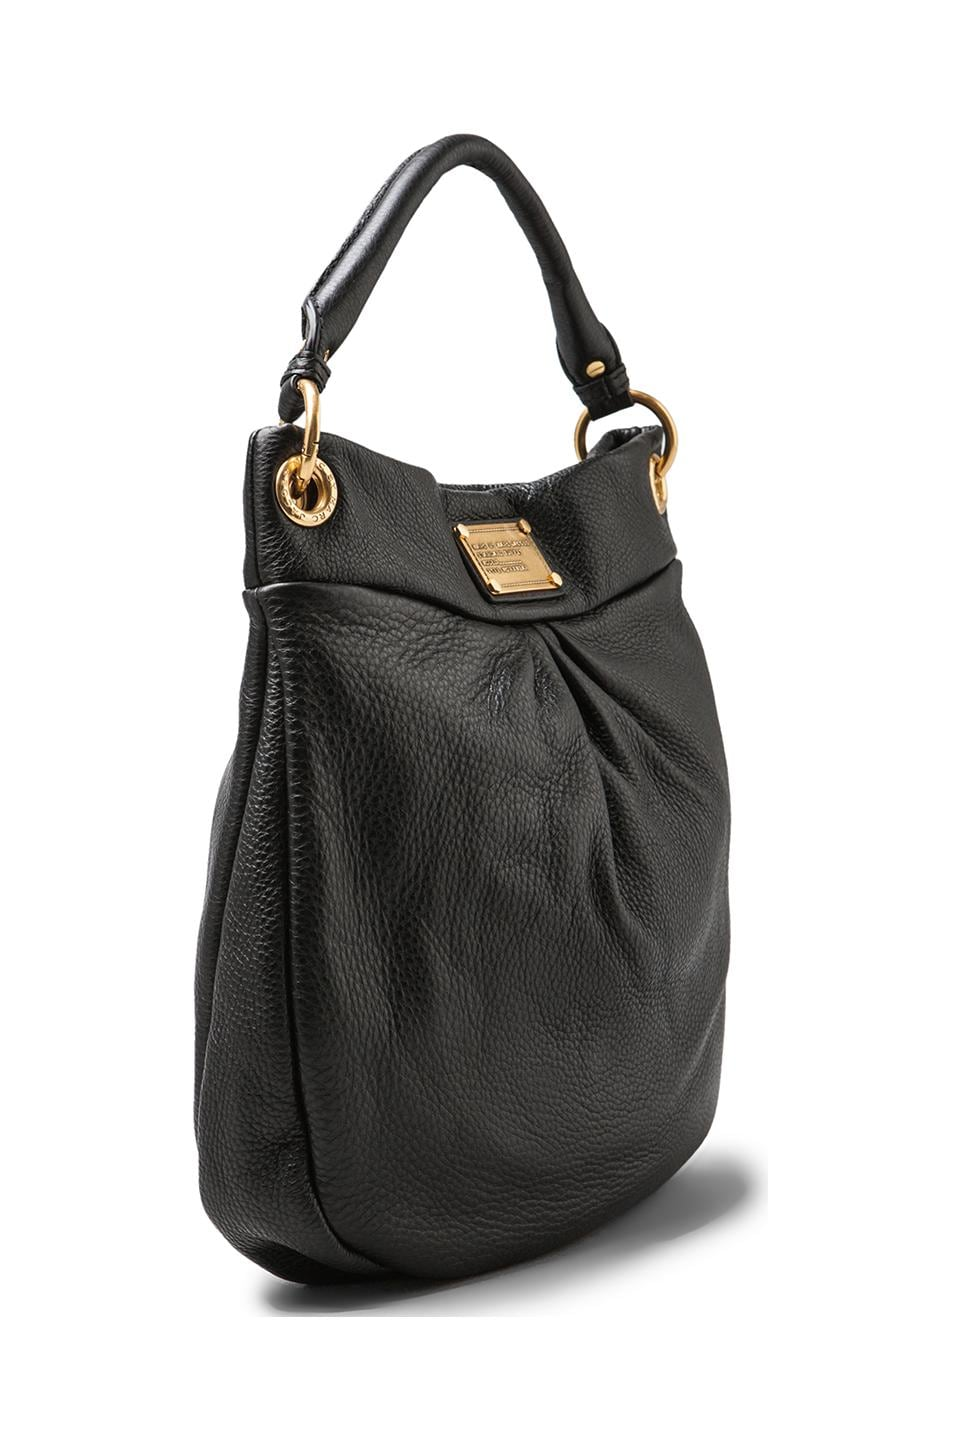 Marc by Marc Jacobs Classic Q Hillier Hobo in Black